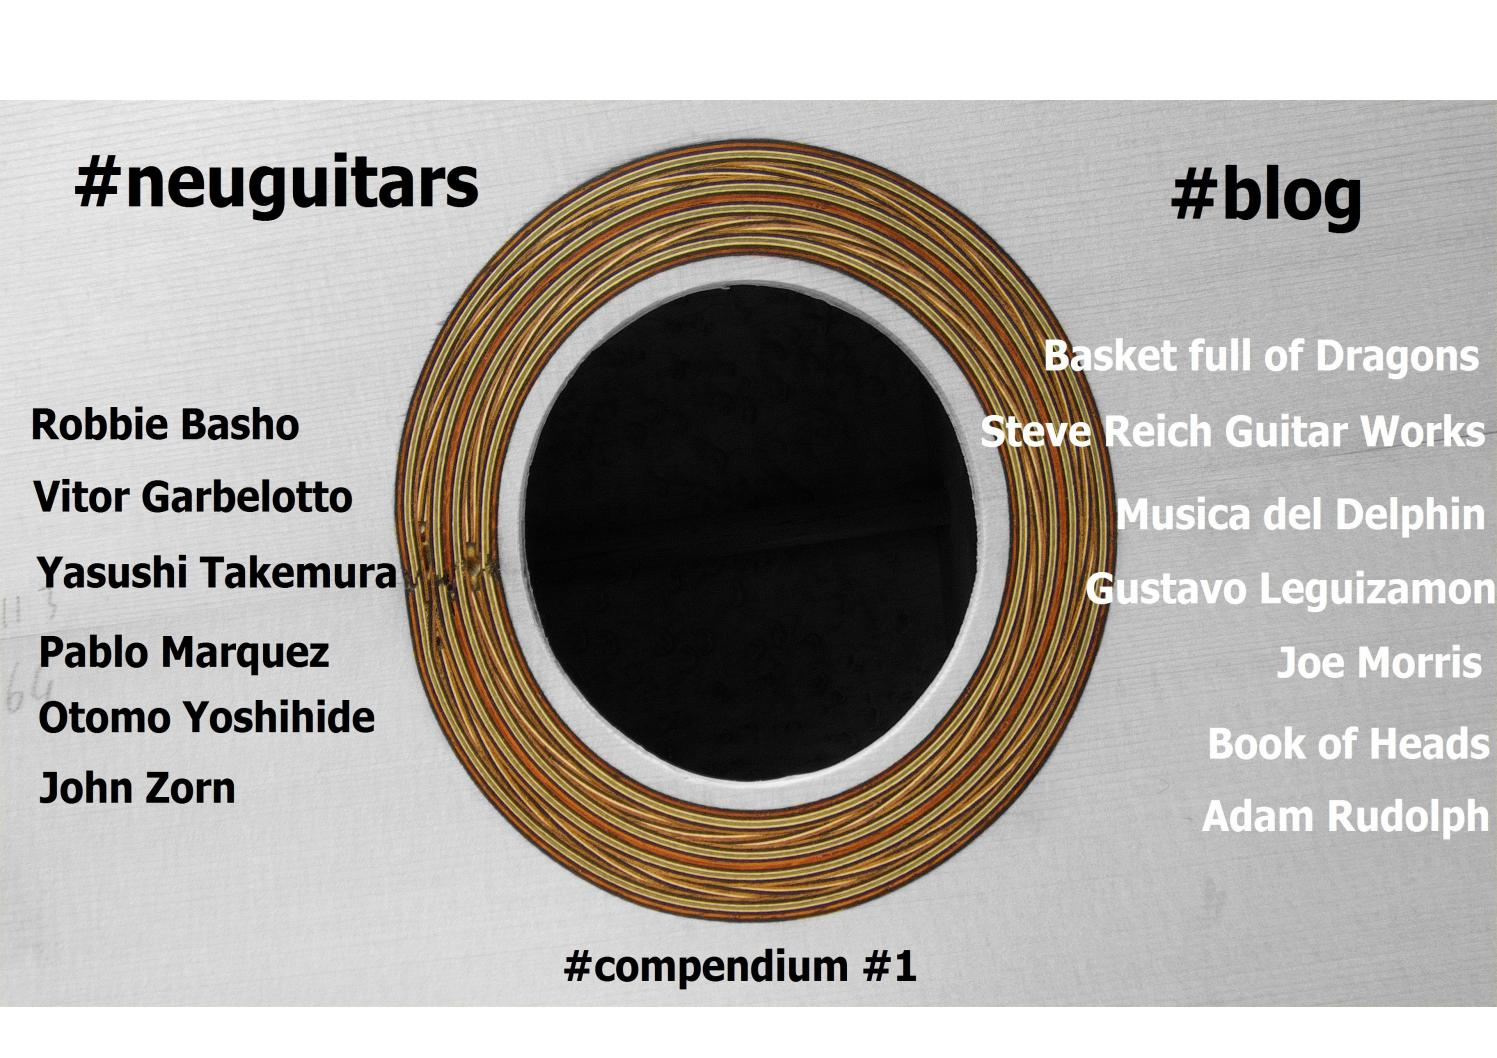 Neuguitars Compendium One By Andrea Aguzzi Issuu In Addition Henry Kaiser Guitar Furthermore Electric Wiring